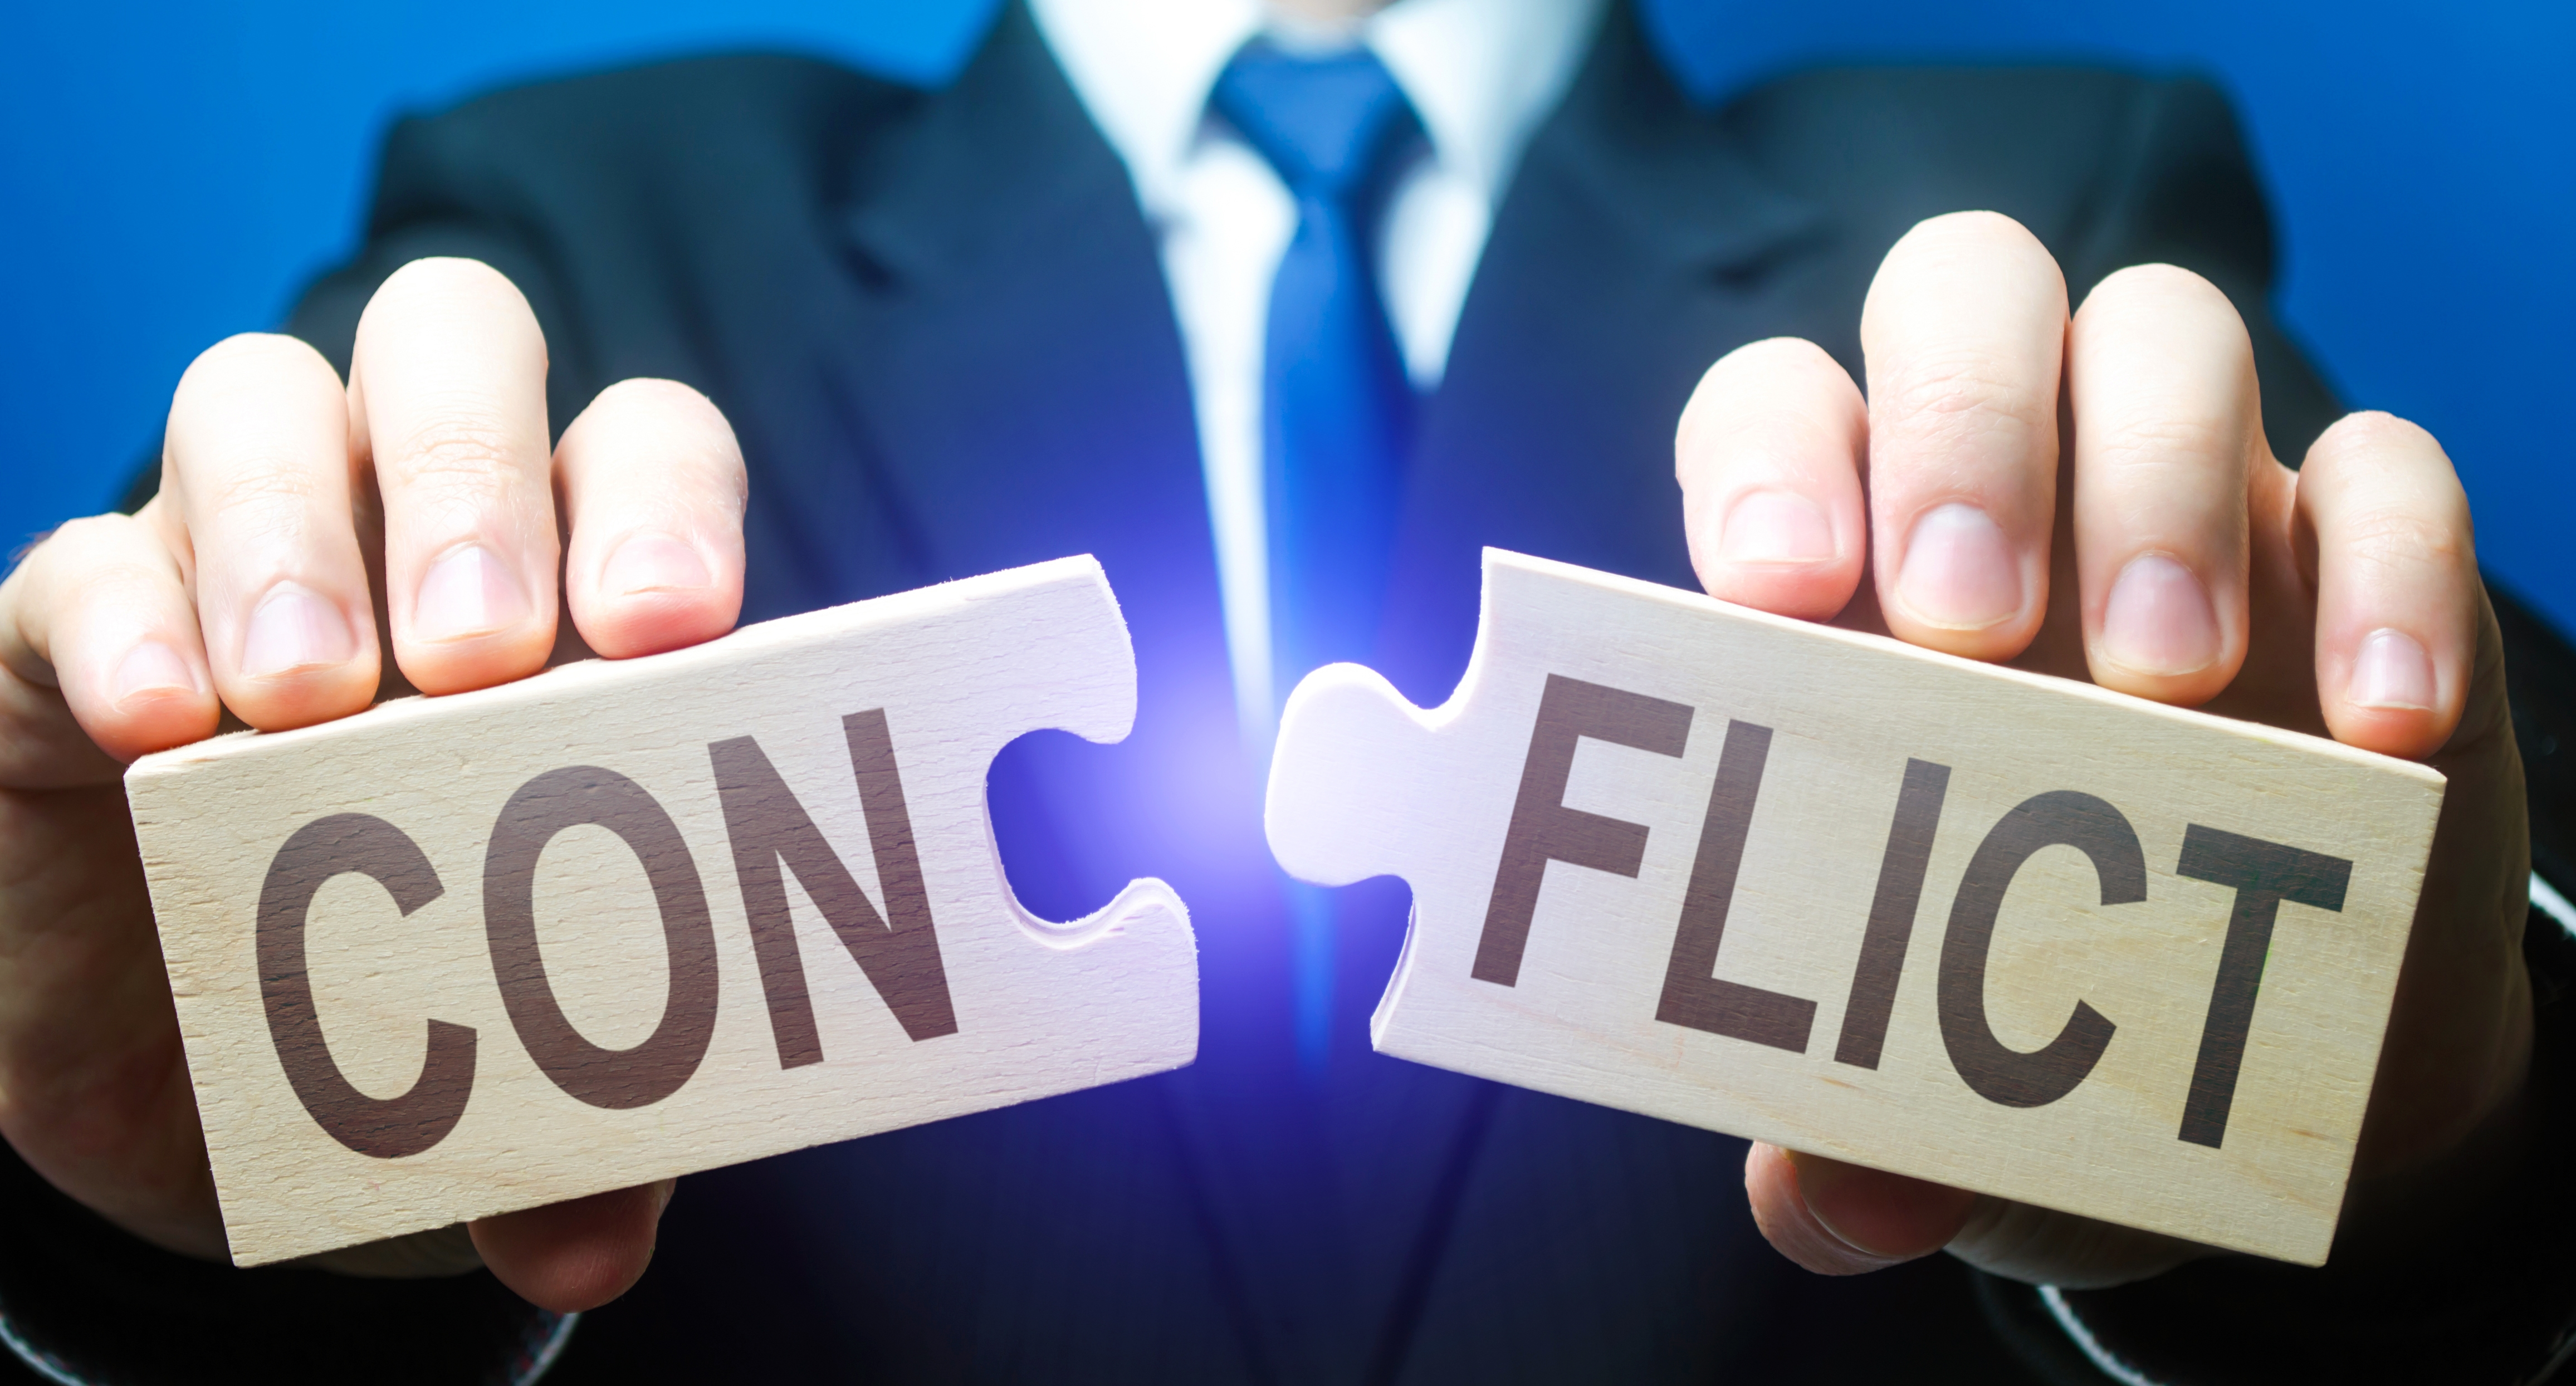 Conflict Resolution Skills: A needed soft skill for employees in the workplace